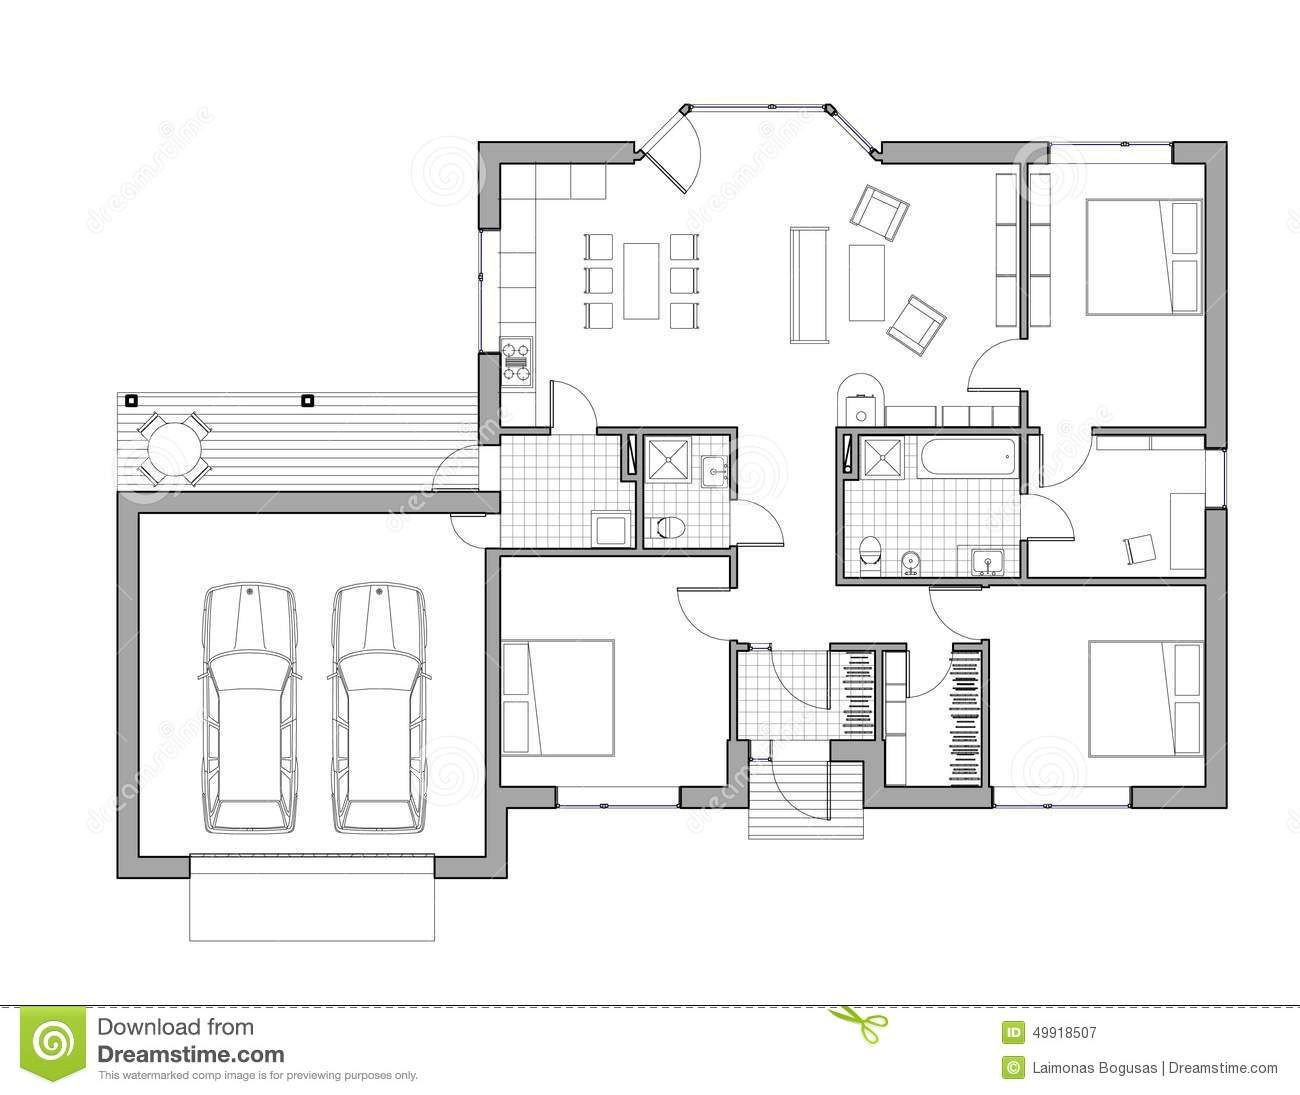 Drawing single family house stock illustration image for Free single family home floor plans